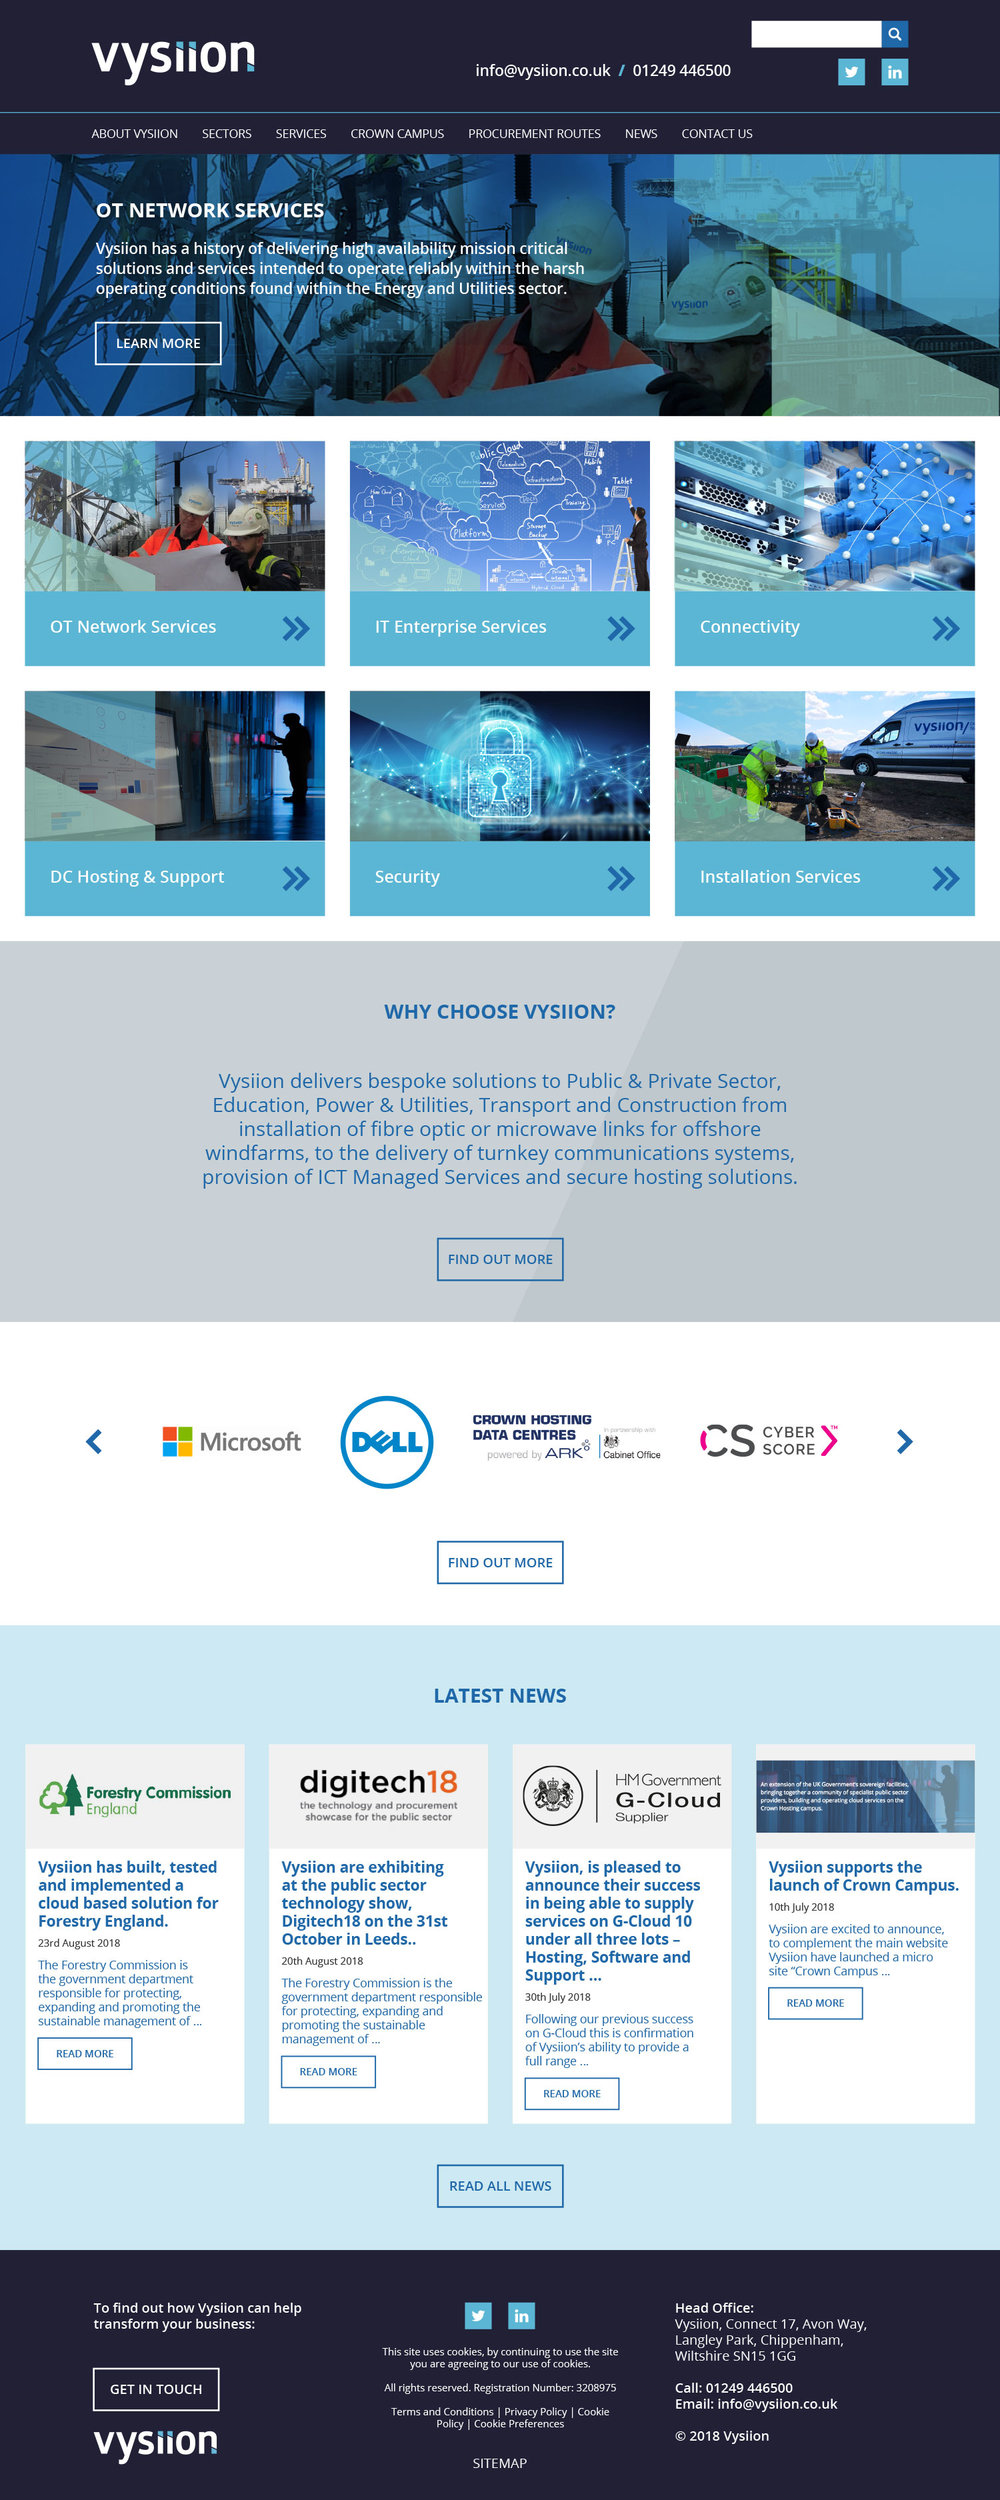 Vysiion home page design layout